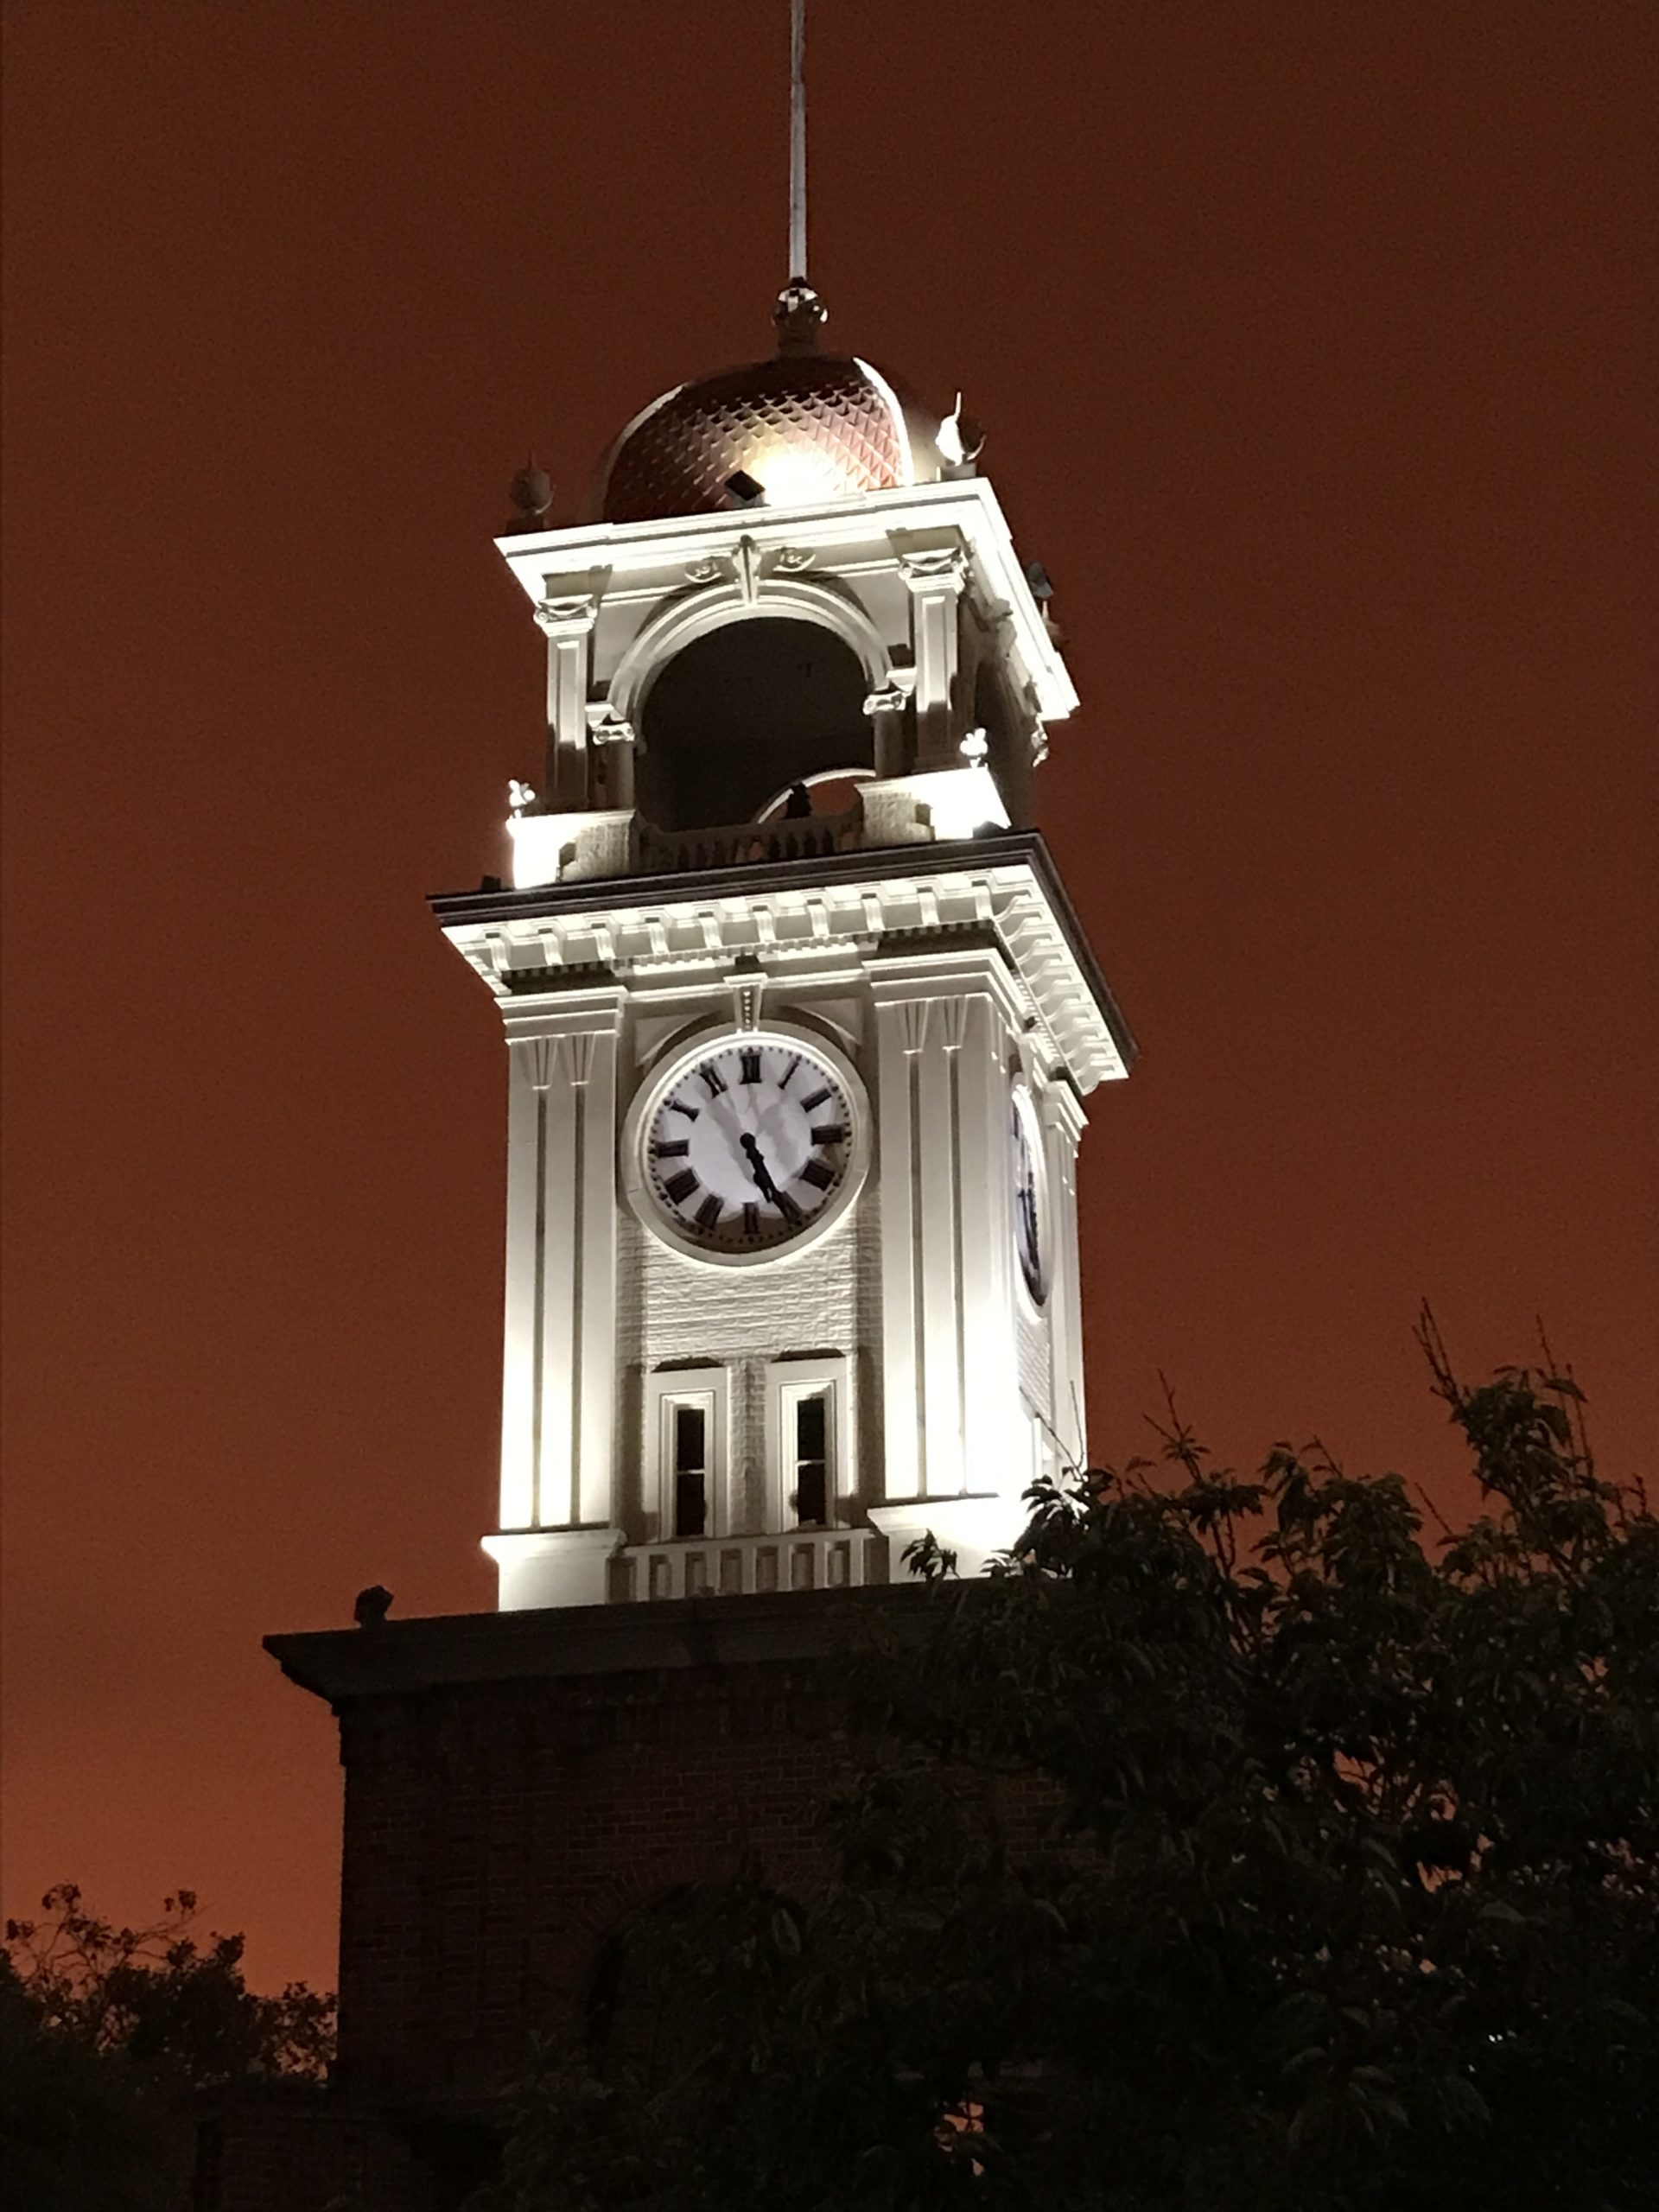 A light-up white clock tower with a dark orange sky background.